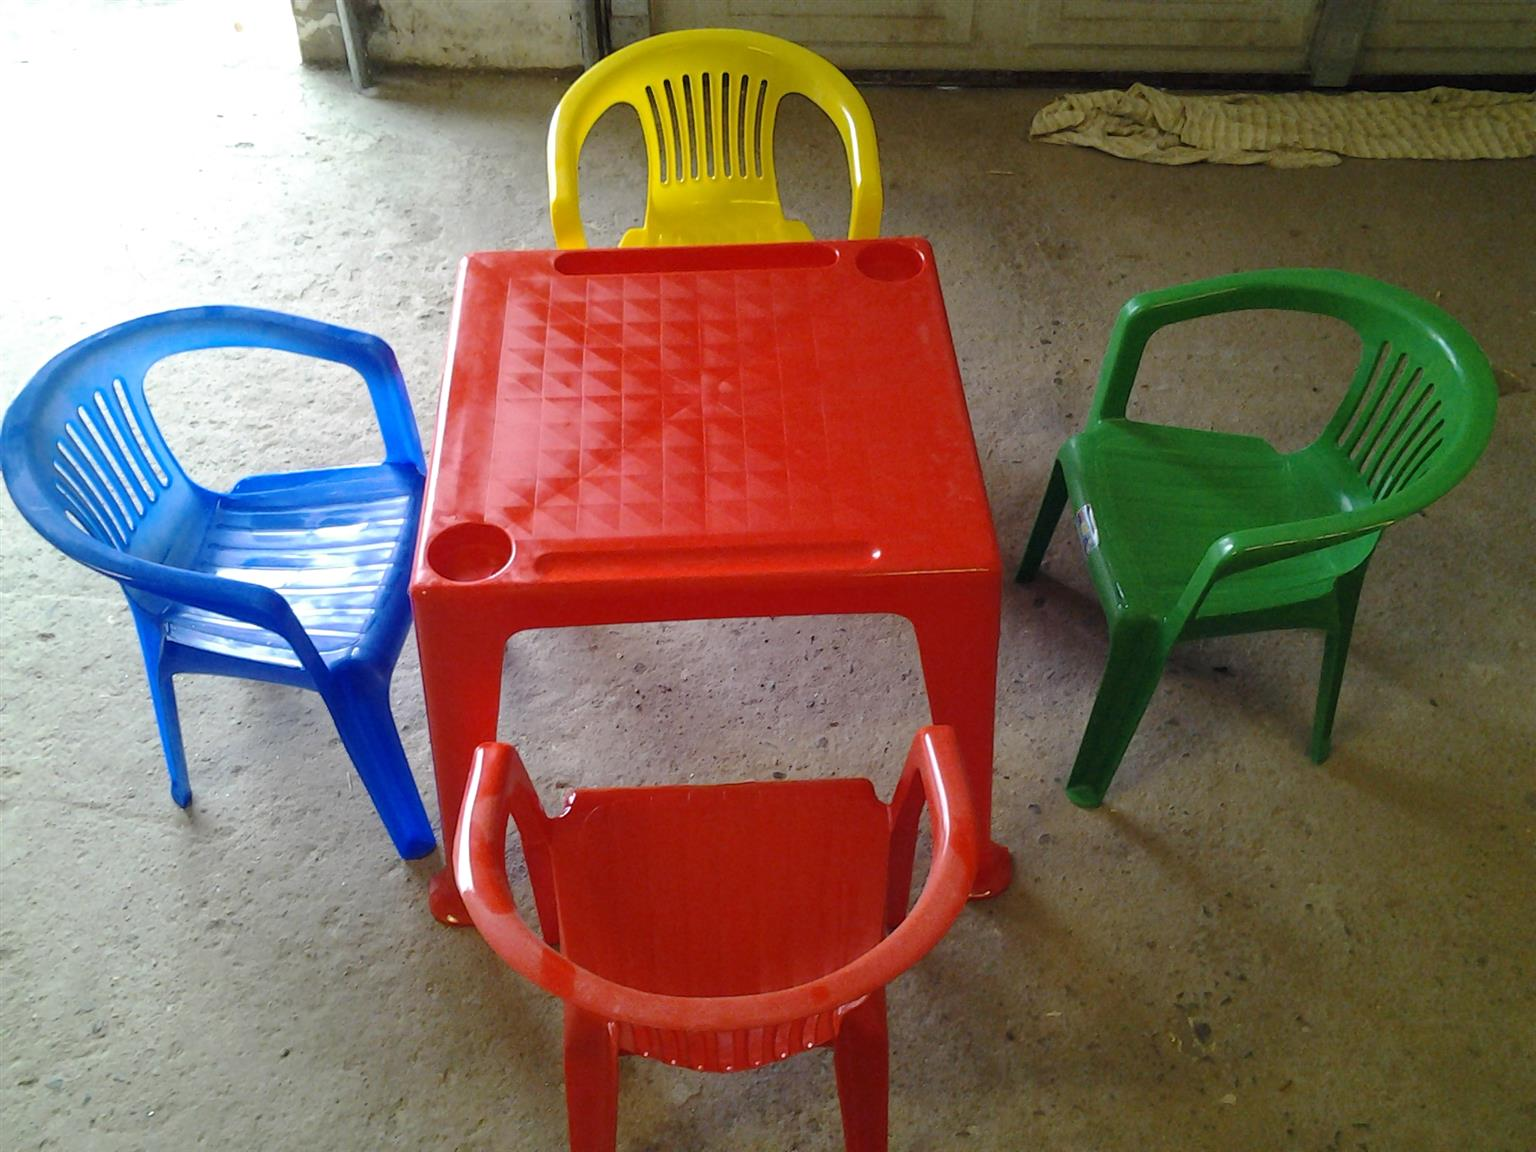 KIDDIES PLASTIC TABLE(SIZE 450MM X 450MM) AND 4  CHAIRS @ R250per set . Ideal for day care. Plenty of stock